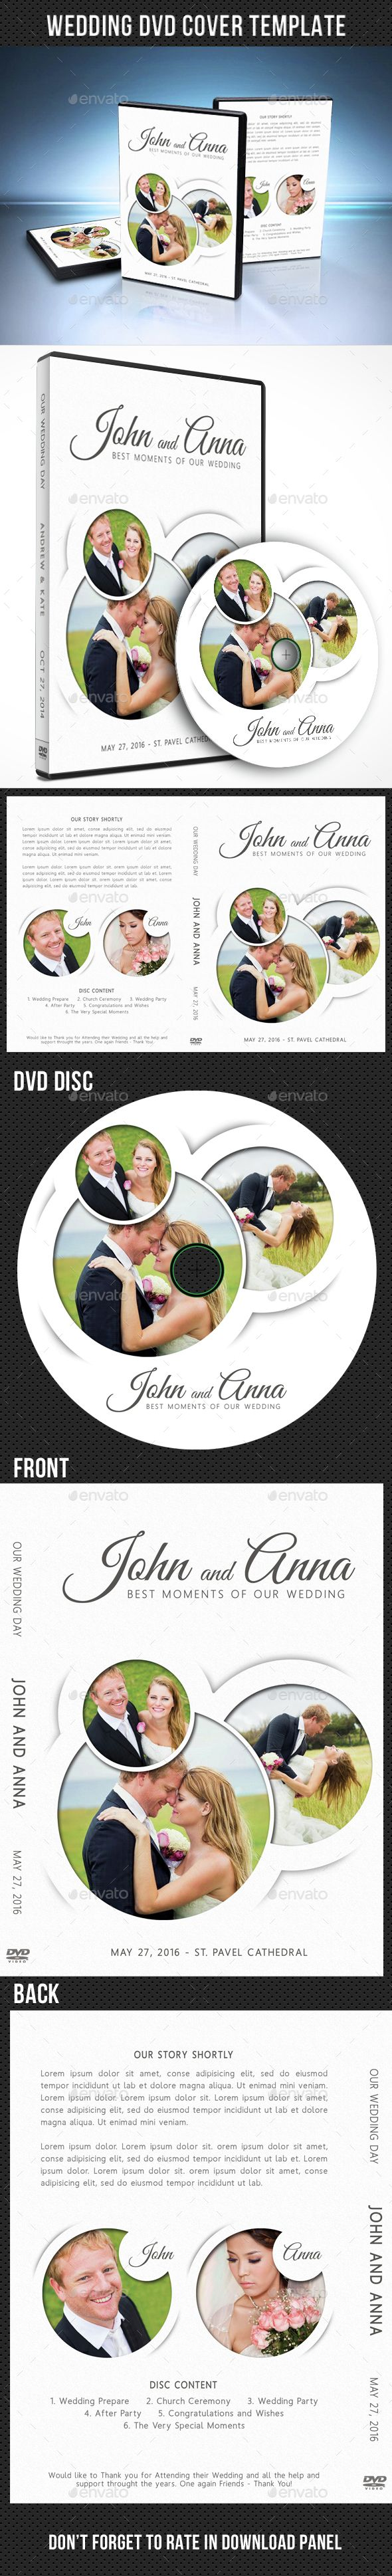 149 best cd dvd templates images on pinterest cd cover wedding dvd cover template 15 pronofoot35fo Choice Image